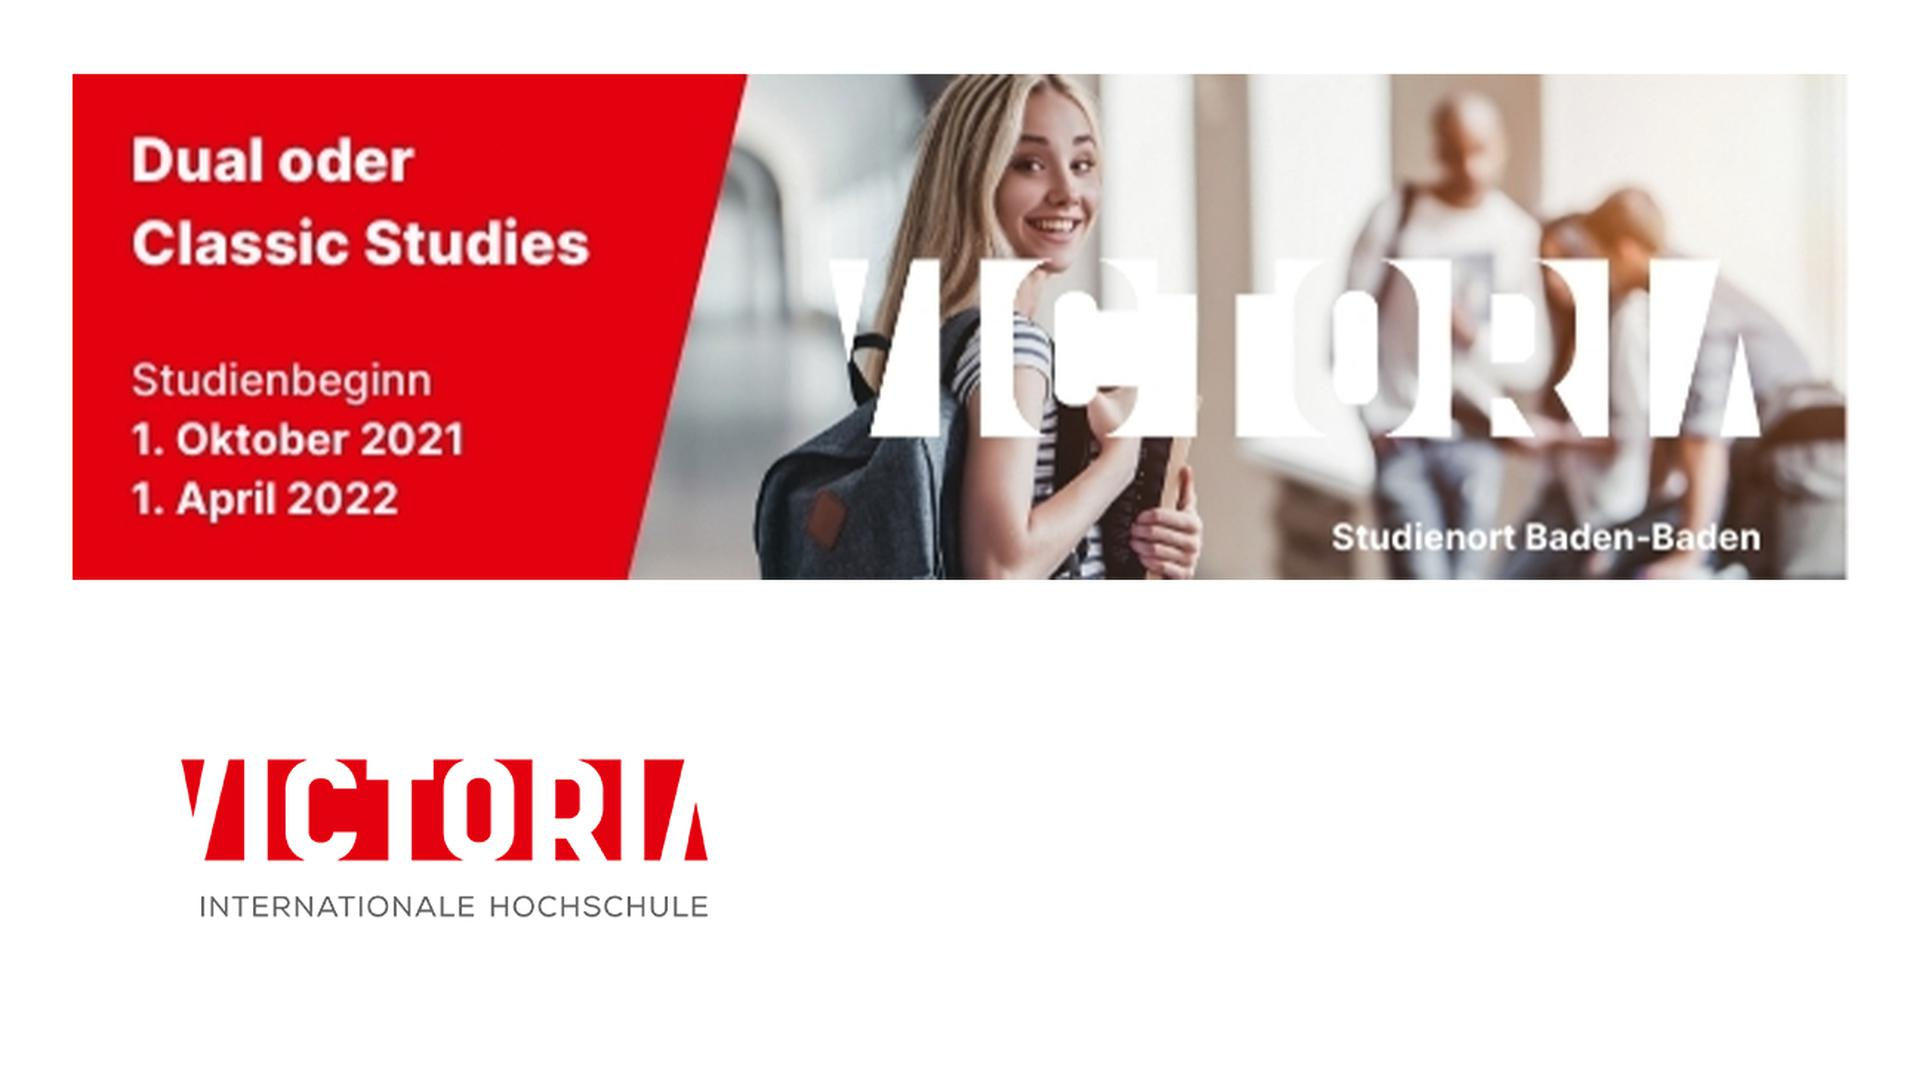 Victoria | Internationale Hochschule -  More than a University